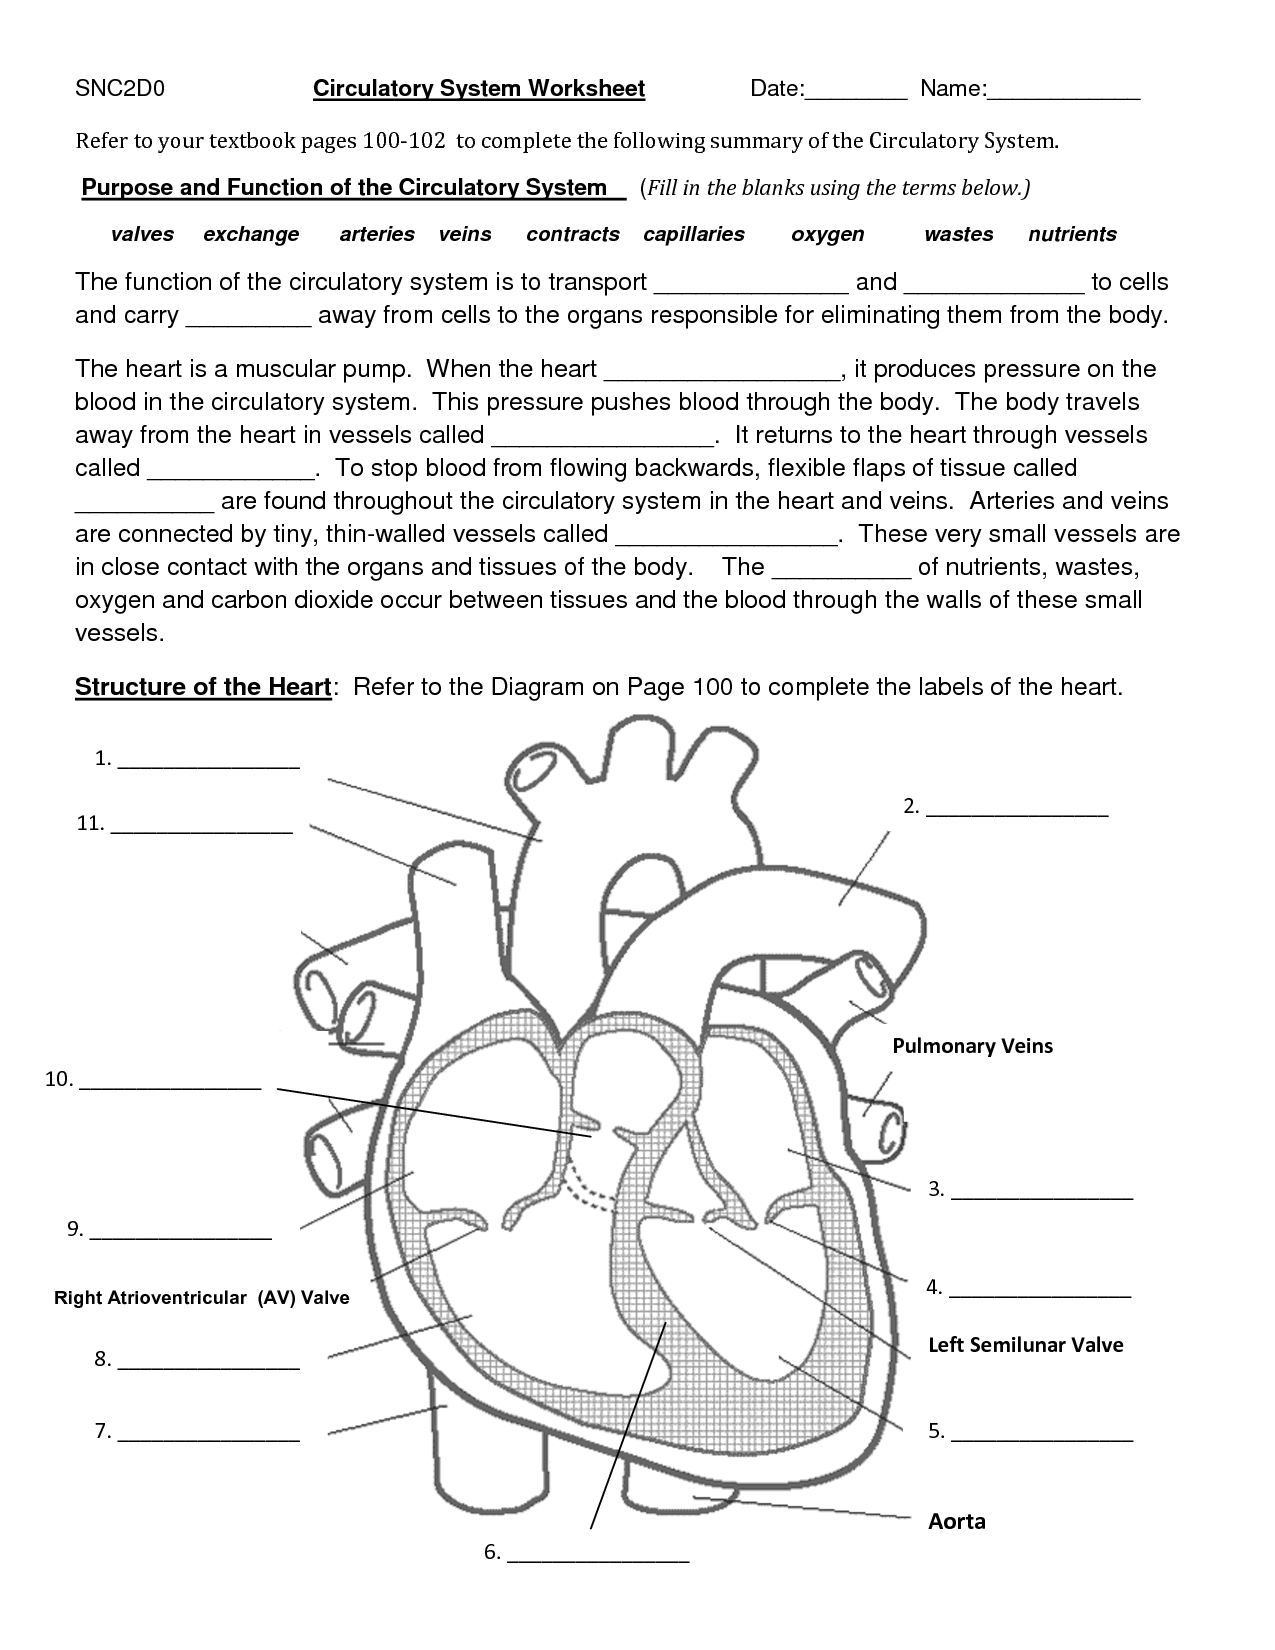 Circulatory System Diagram Worksheet Worksheet 2 – Heart Diagram Worksheet